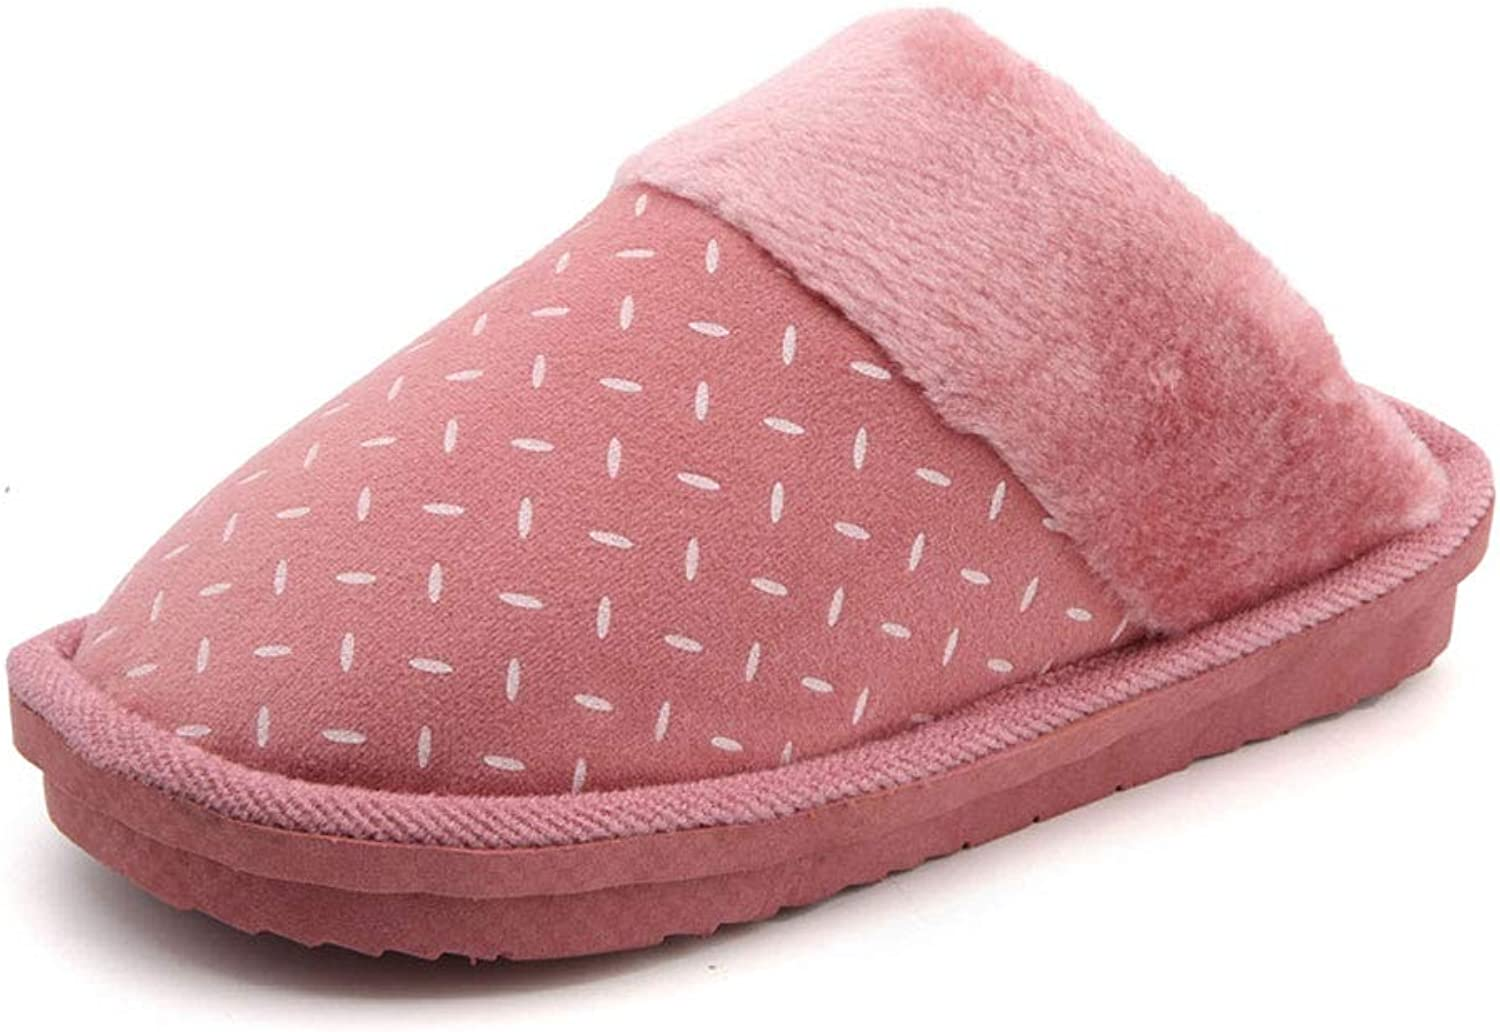 Couple Home Cotton Slippers Winter Indoor Non-Slip Warm shoes Cute Plush Thicken Flat Round Head Men Women shoes,Pink,39